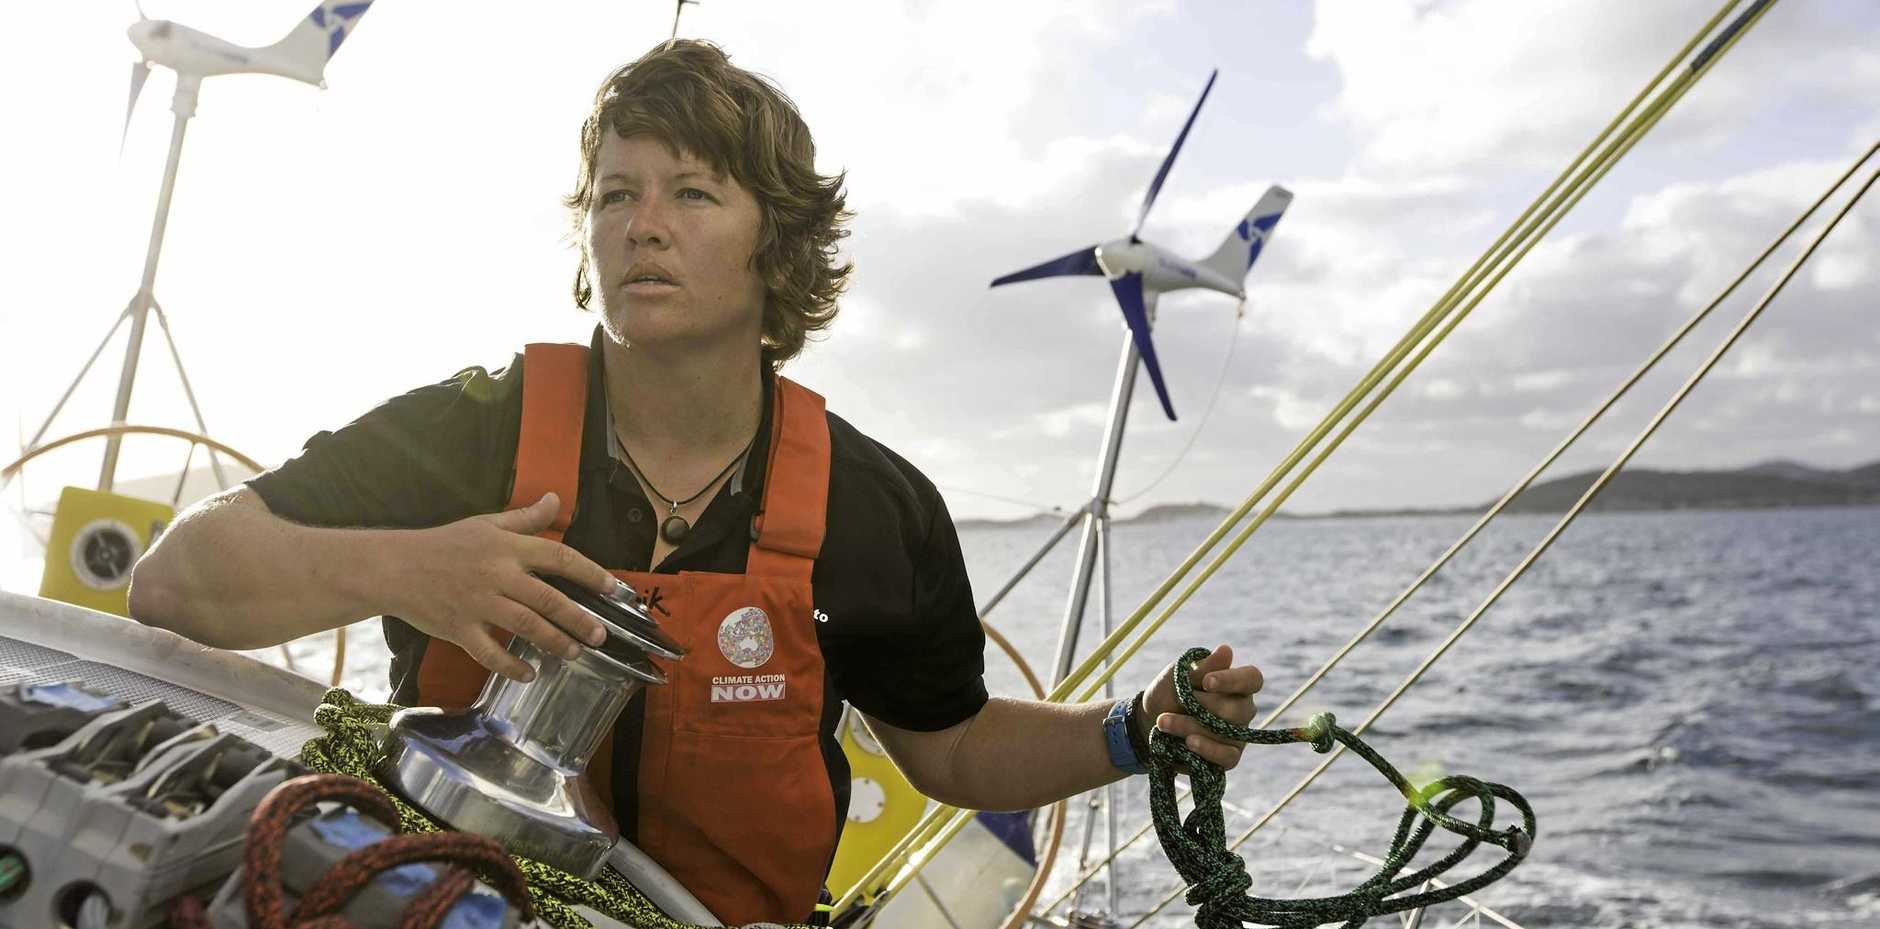 ADVENTURER: Lisa Blair attempted to break the world record for sailing solo around Antarctica, and even after a disastrous dismasting is set to be officially recognised as the first woman to circumnavigate the continent.